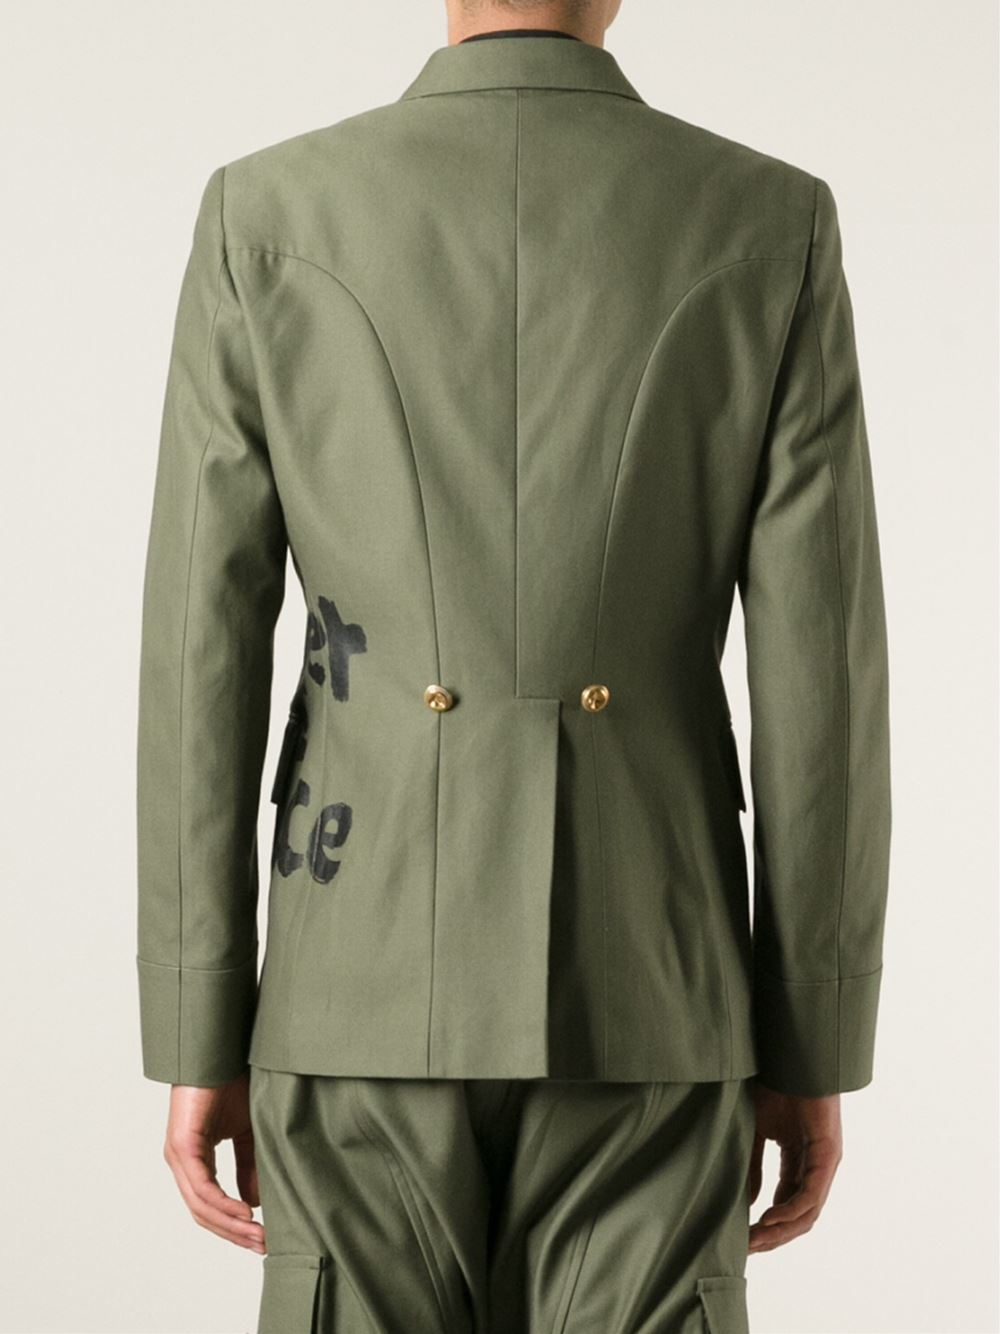 Comme des Garçons Graffiti Double Breasted Jacket in Green for Men